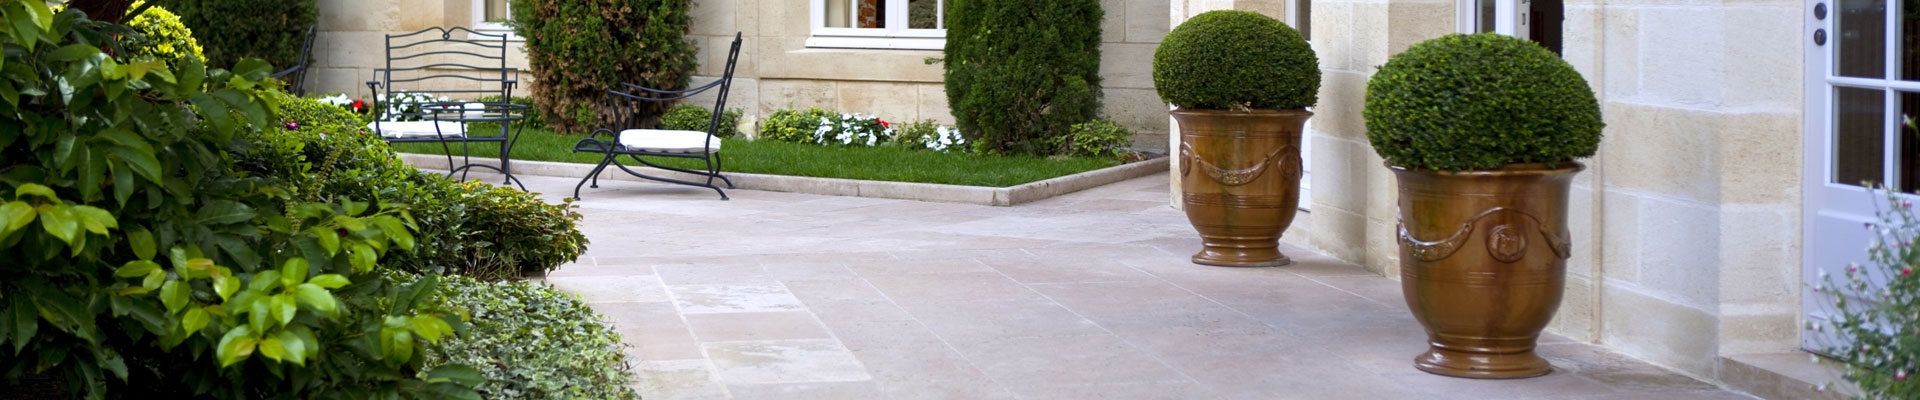 Make sure that your stone surfaces